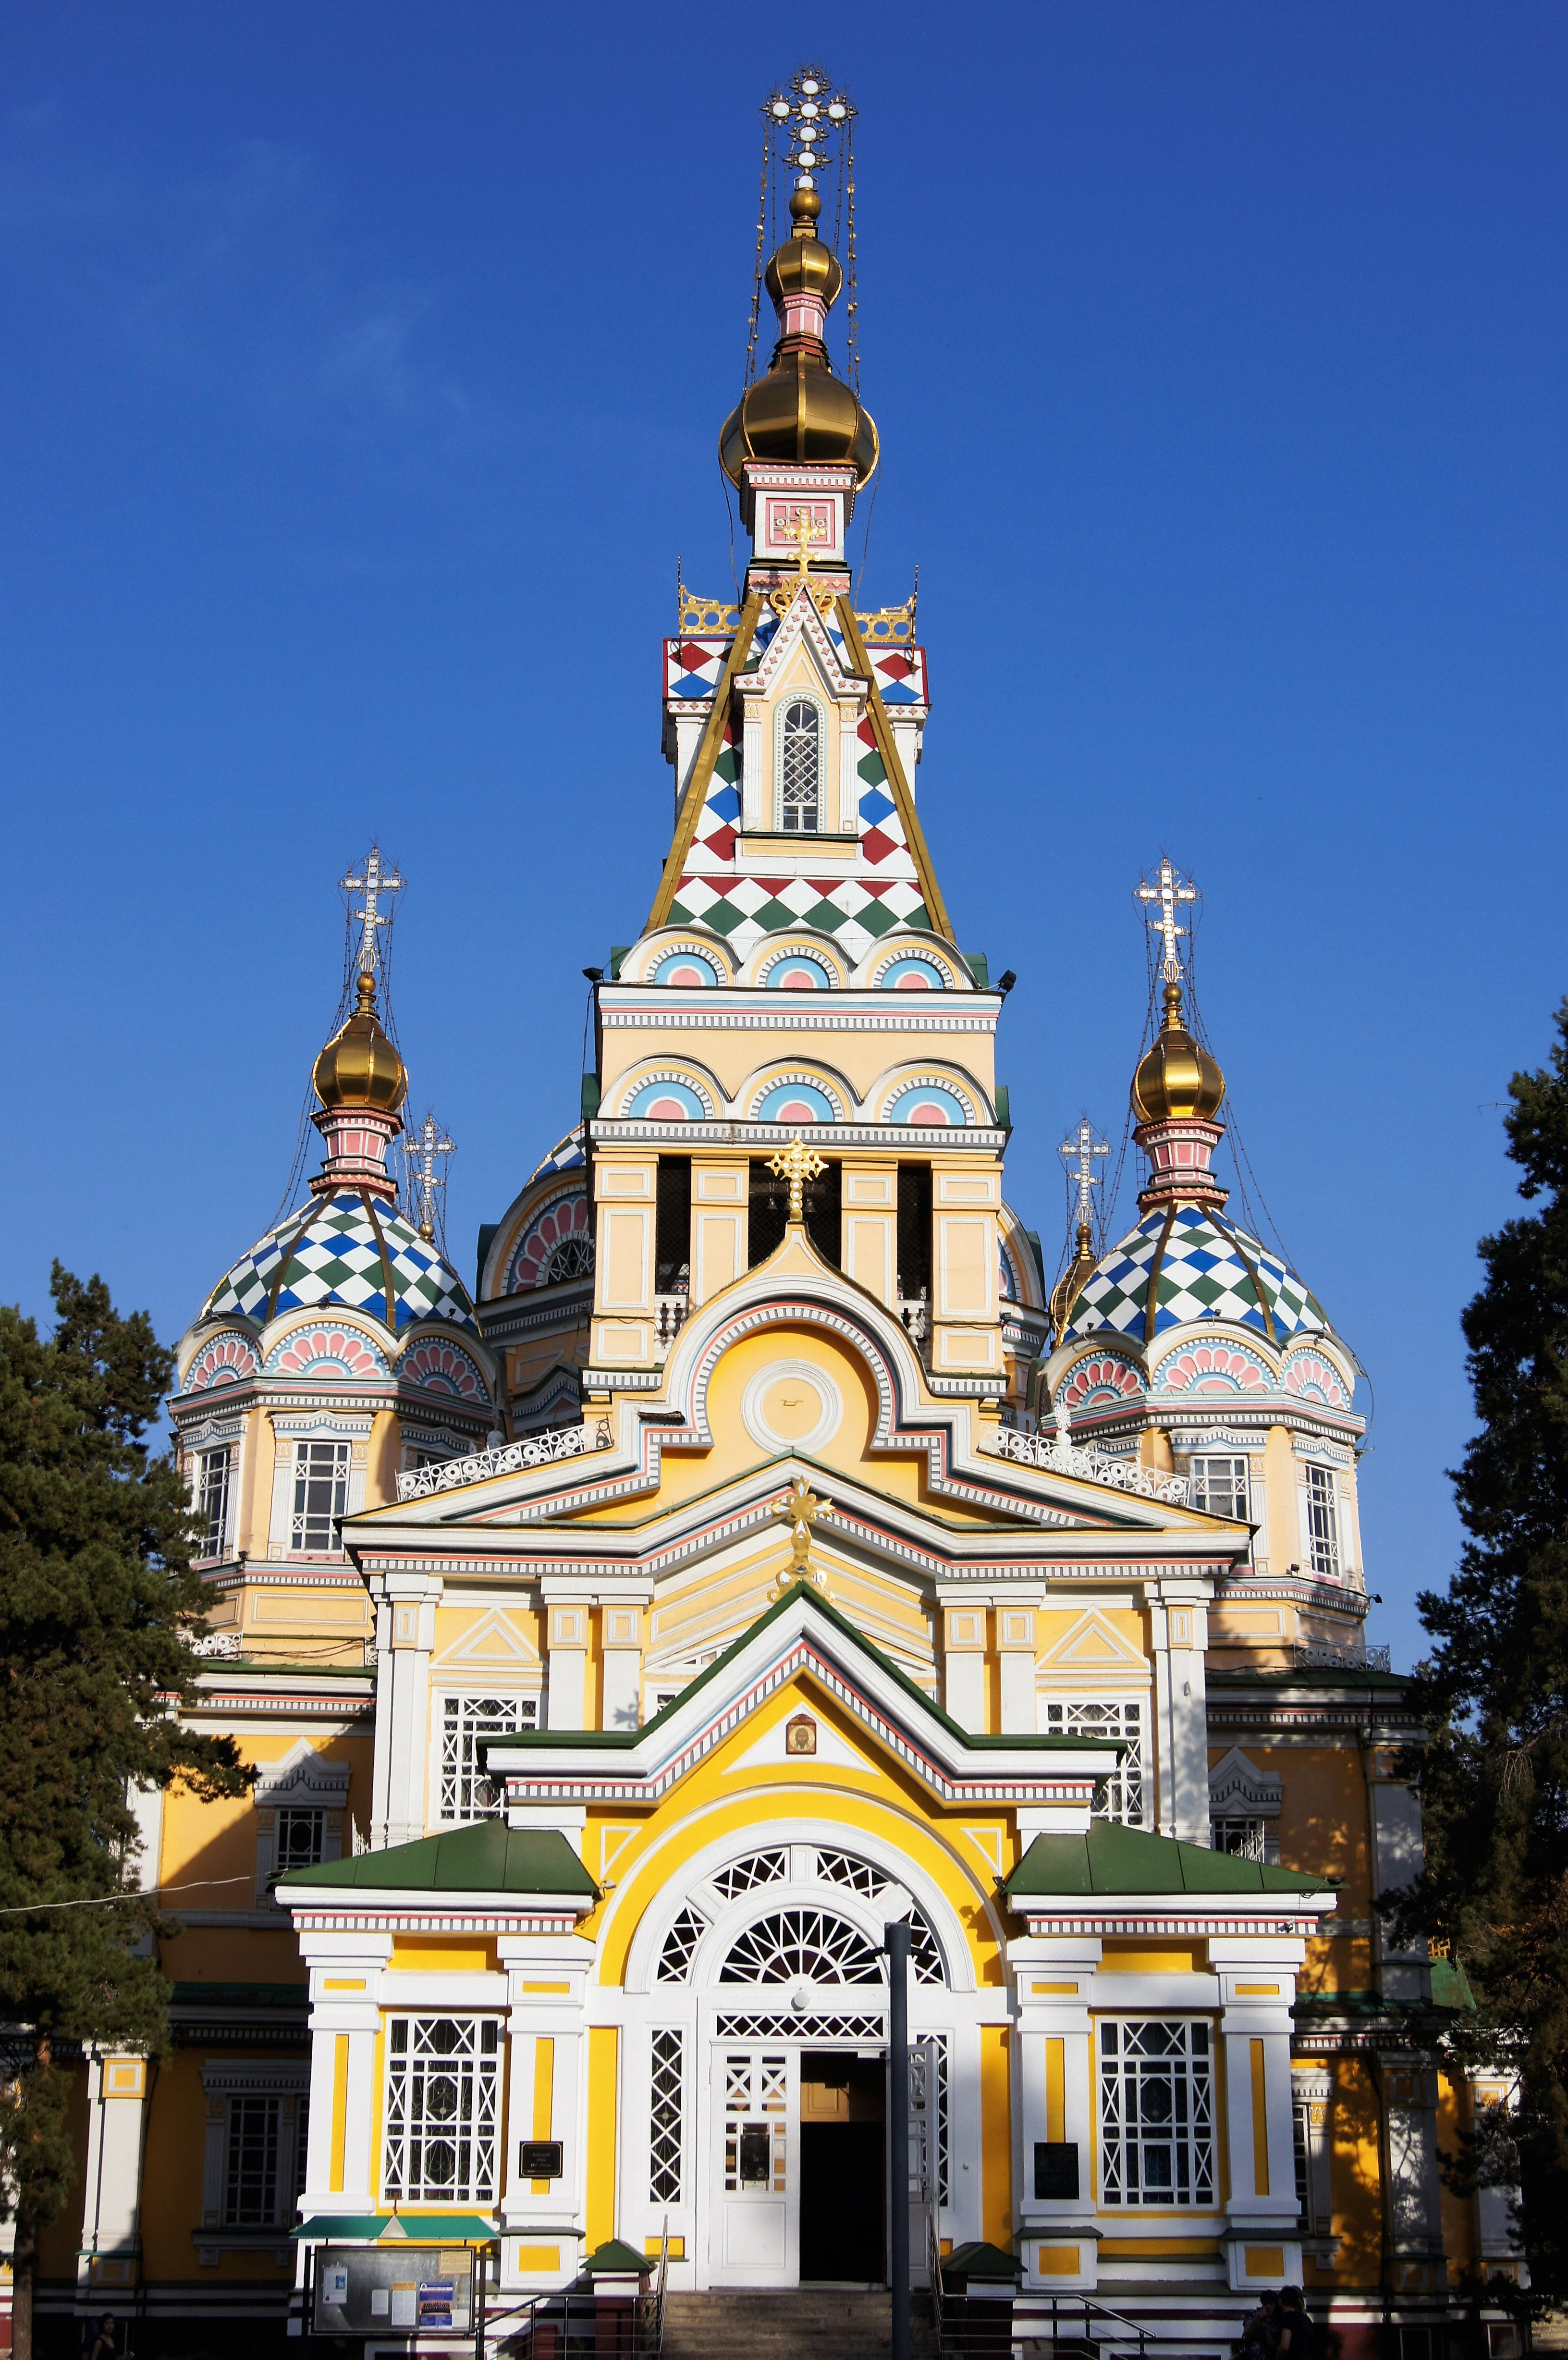 The brightly painted Panfilov cathedral in Almaty